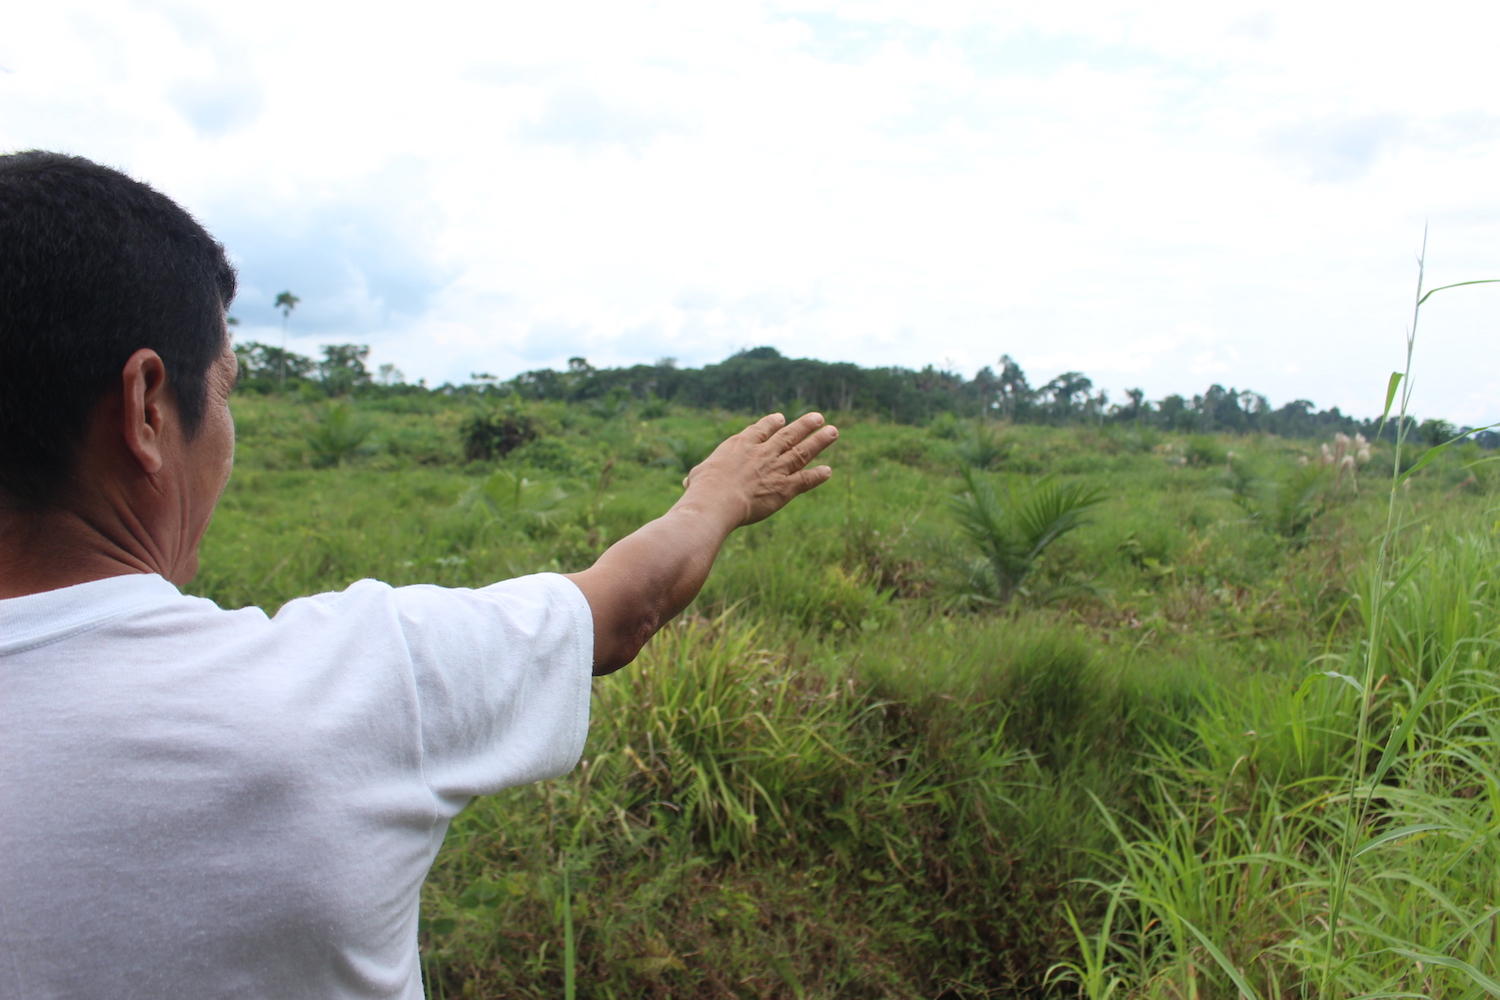 President of the Riveras del Punino community, Maximiliano Moreno, shows terrain adjoining his farm that used to be forest and now is planted with palm. Photo by Daniela Aguila